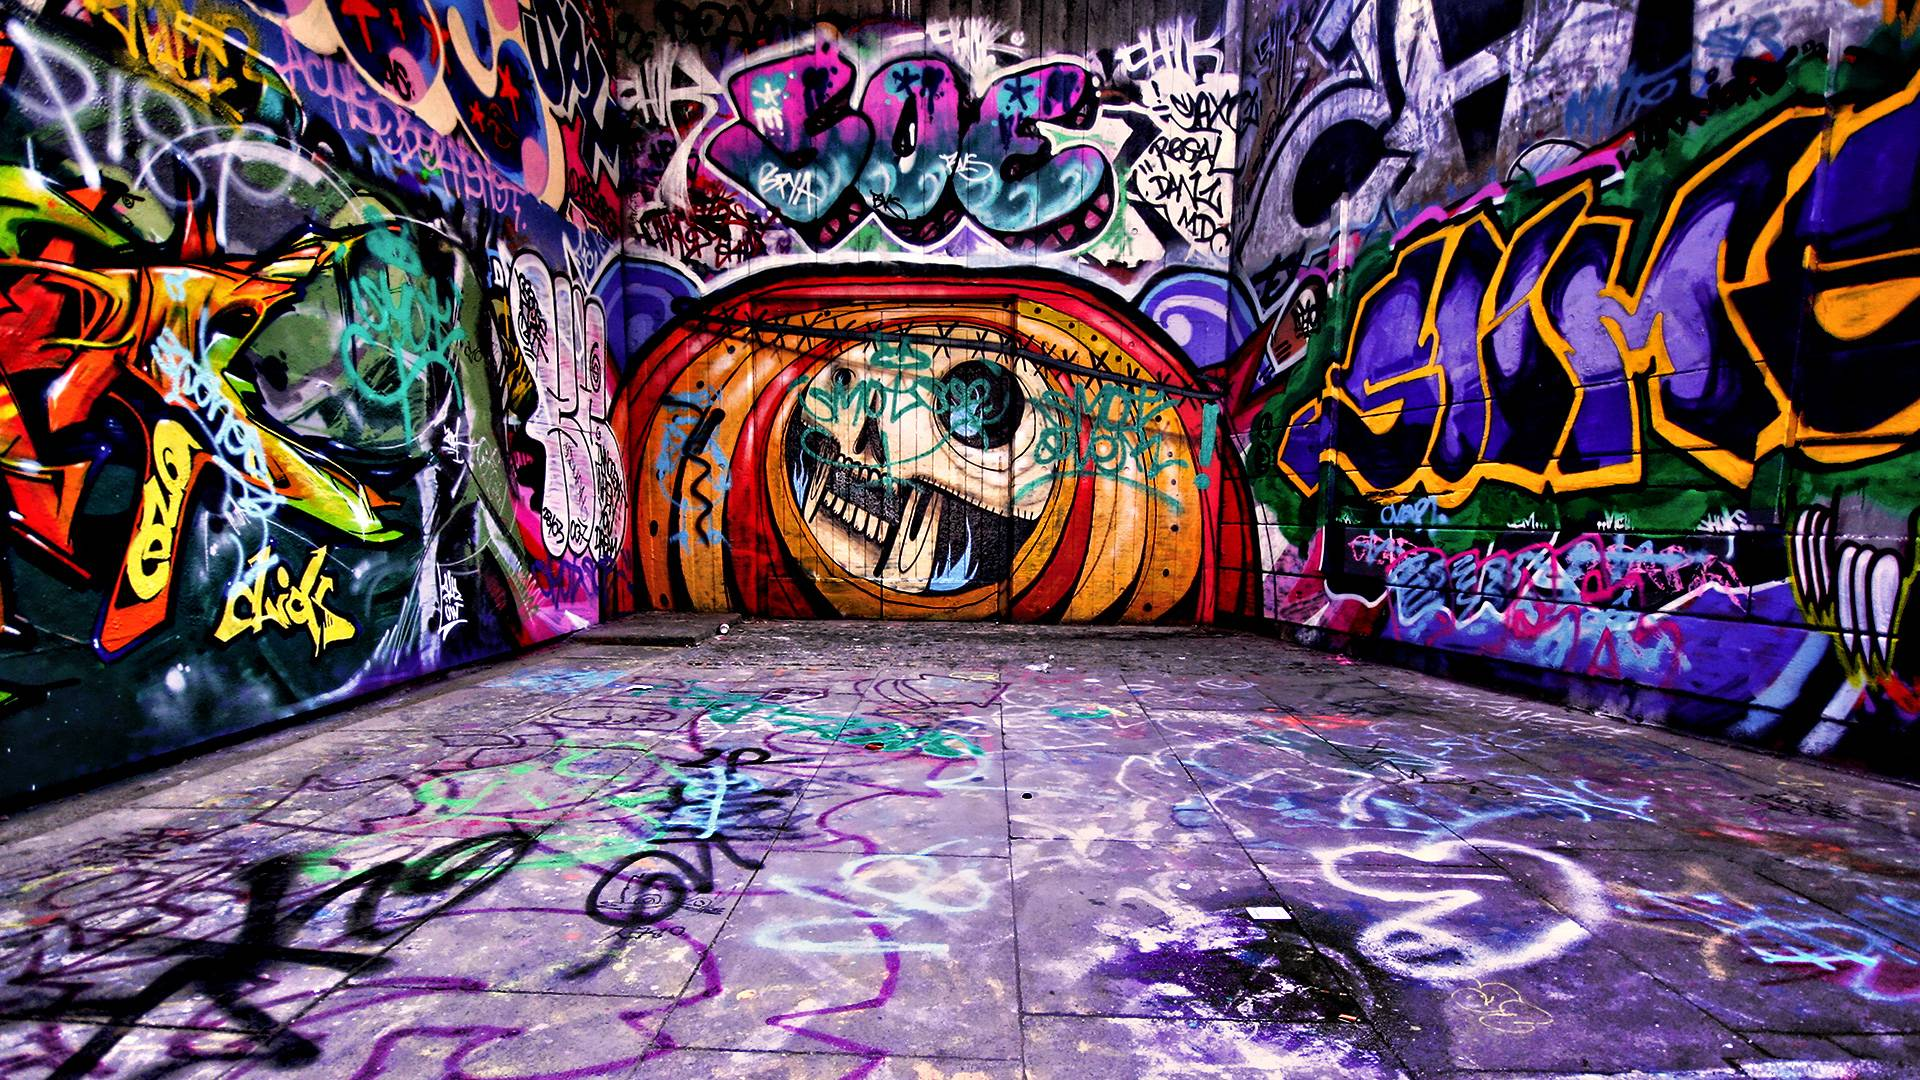 street art cool graffiti wallpapers - photo #19